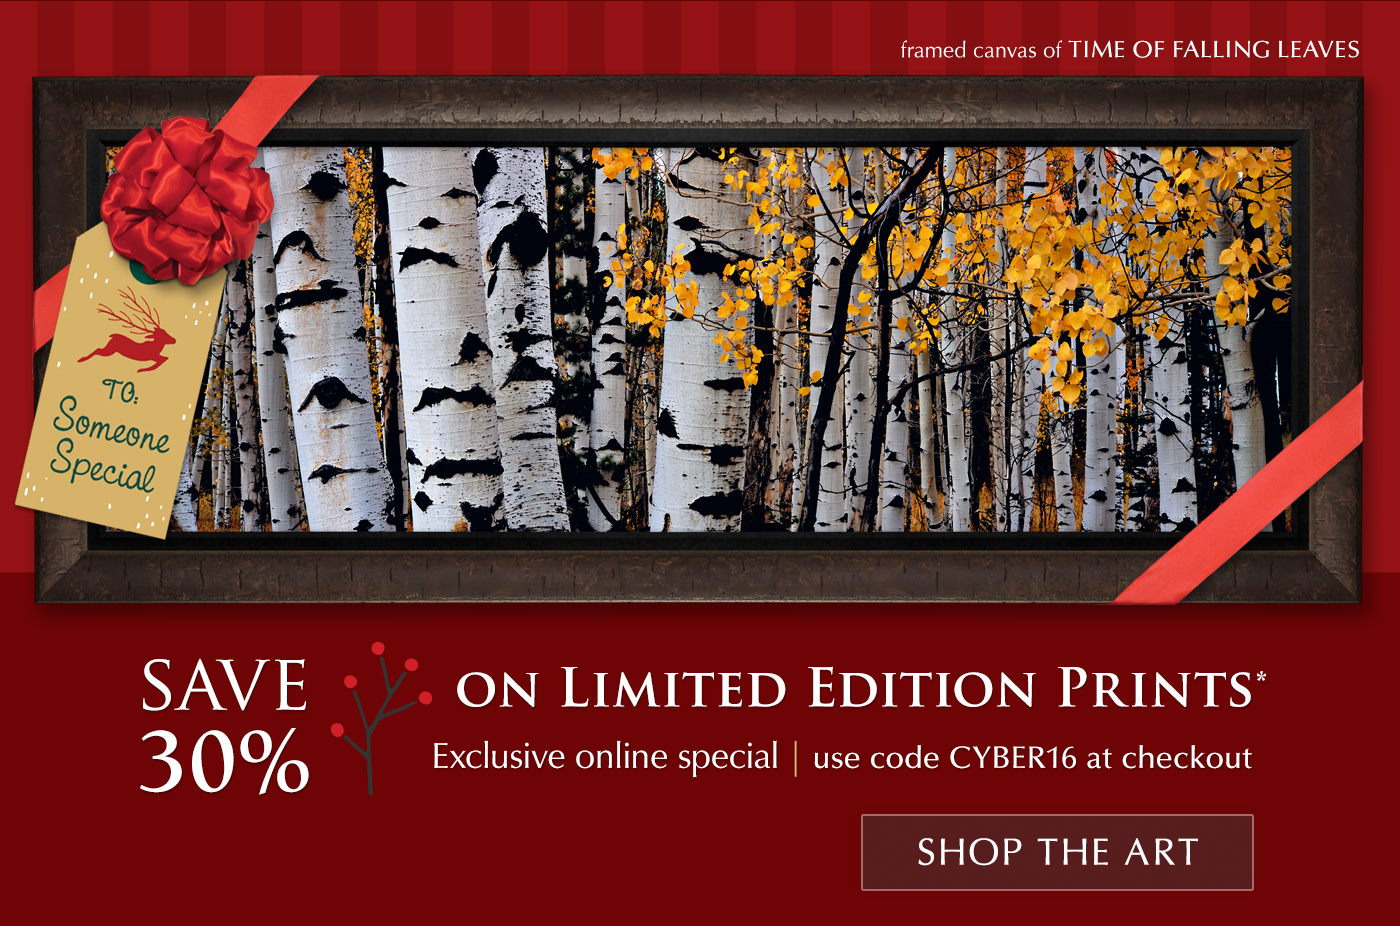 Save 30% on Limited Edition Prints